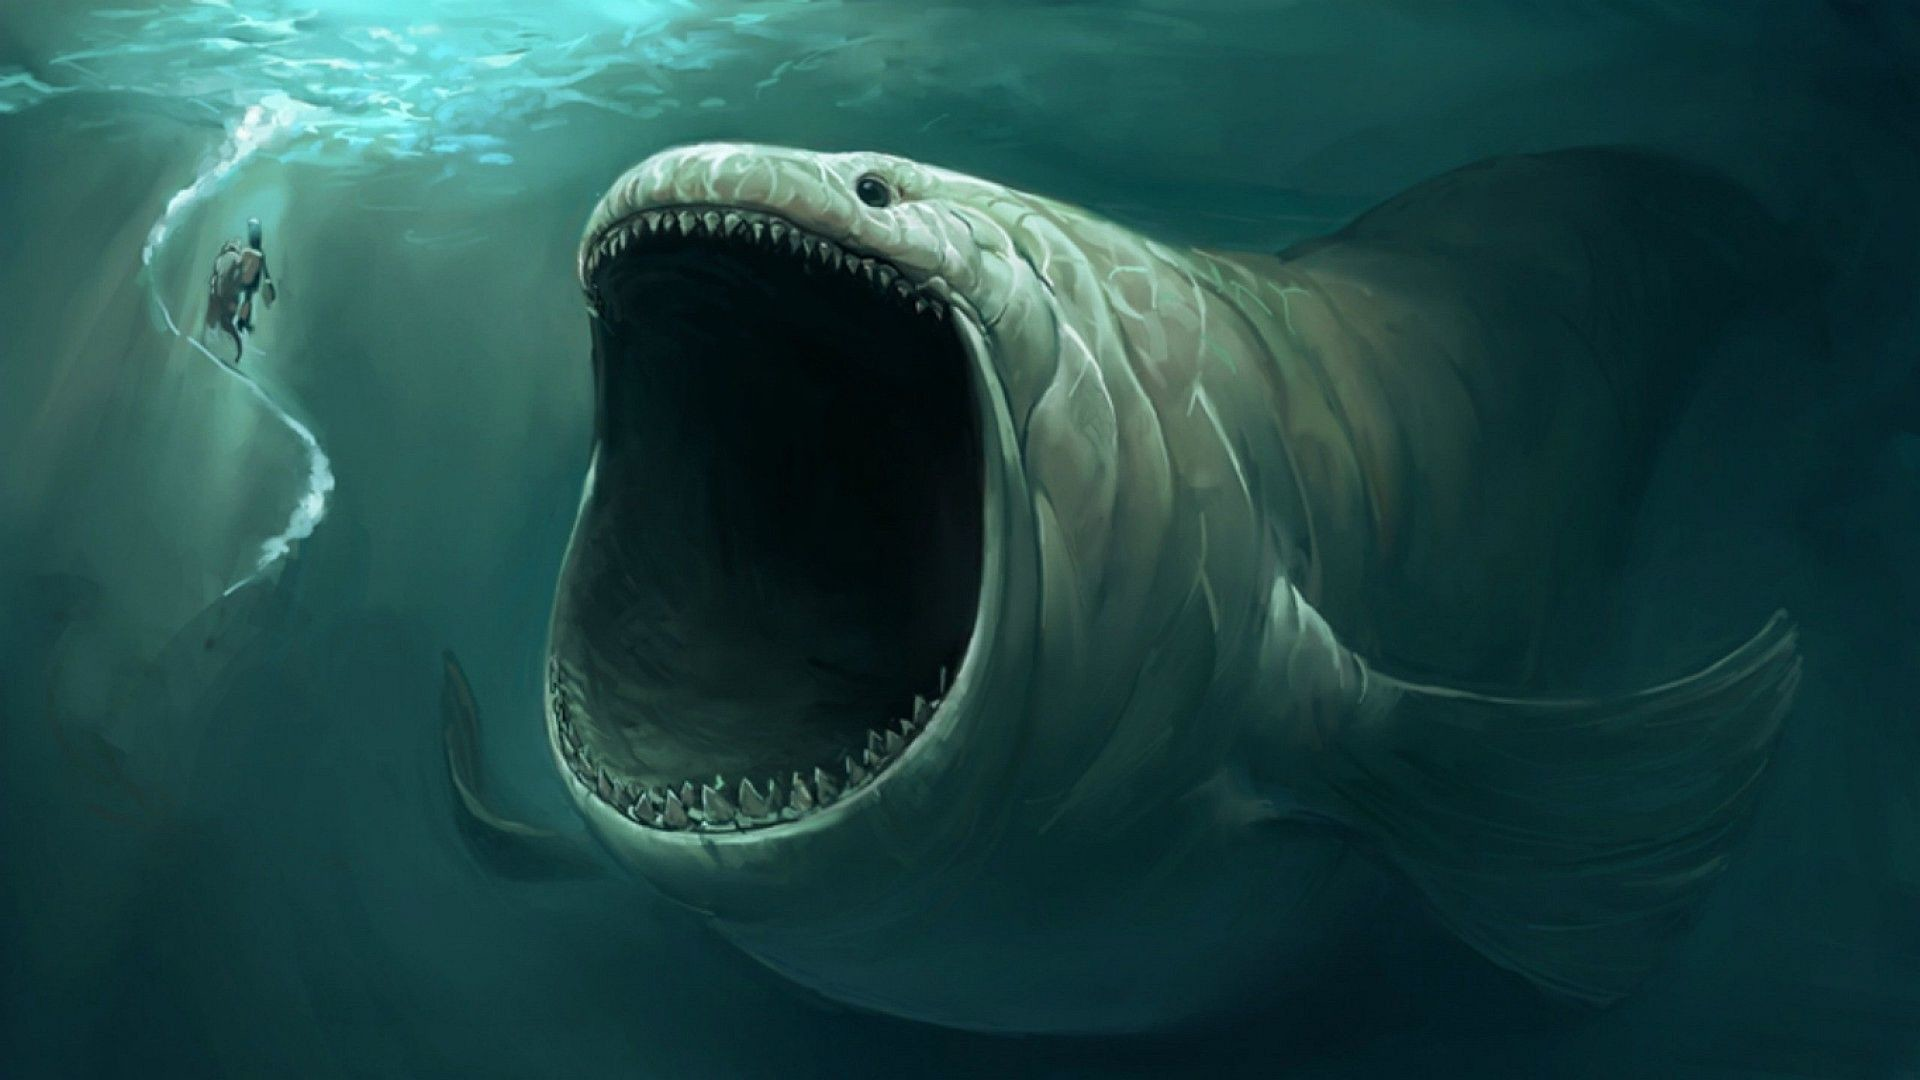 Res: 1920x1080, Giant Sea Monster HD Wallpaper |  | ID:52889